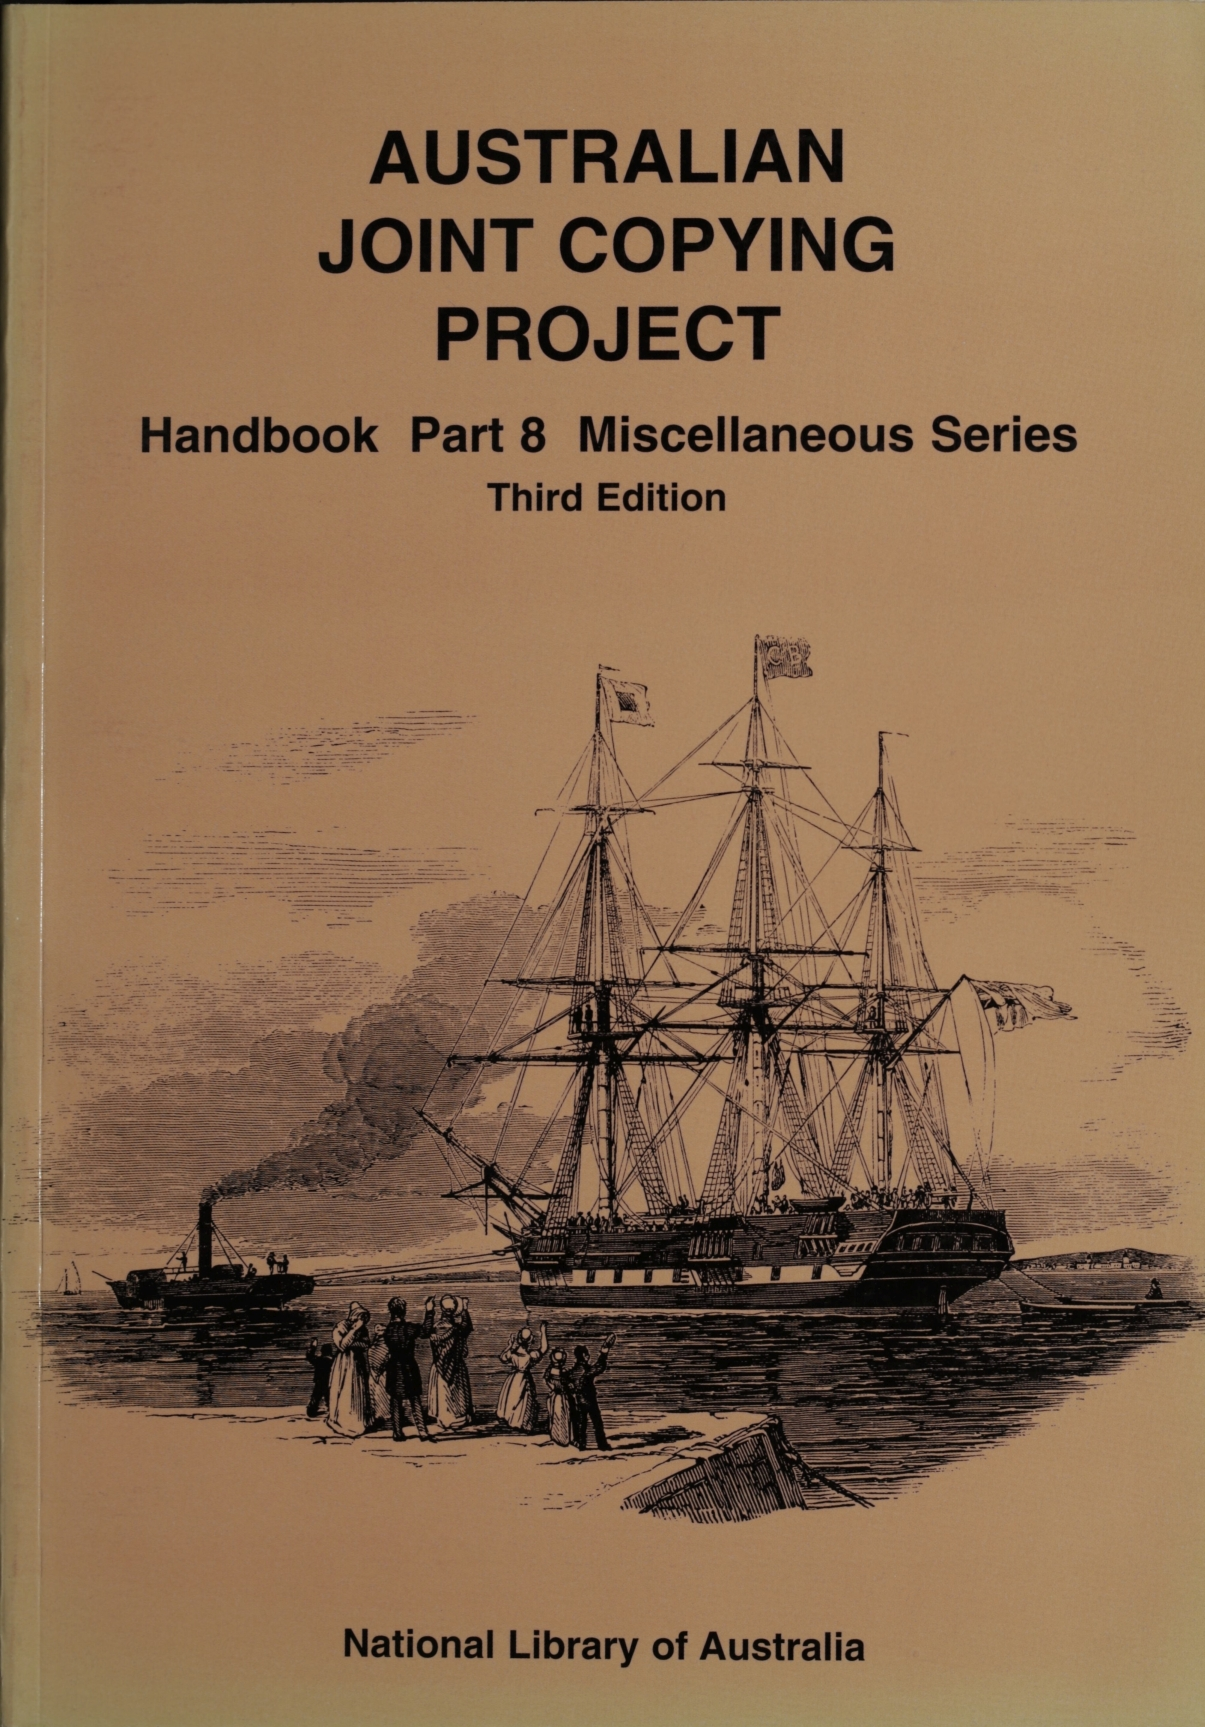 Australian Joint Copying Project handbook. Part 8, Miscellaneous [M series] / compiled by Ekarestini O'Brien